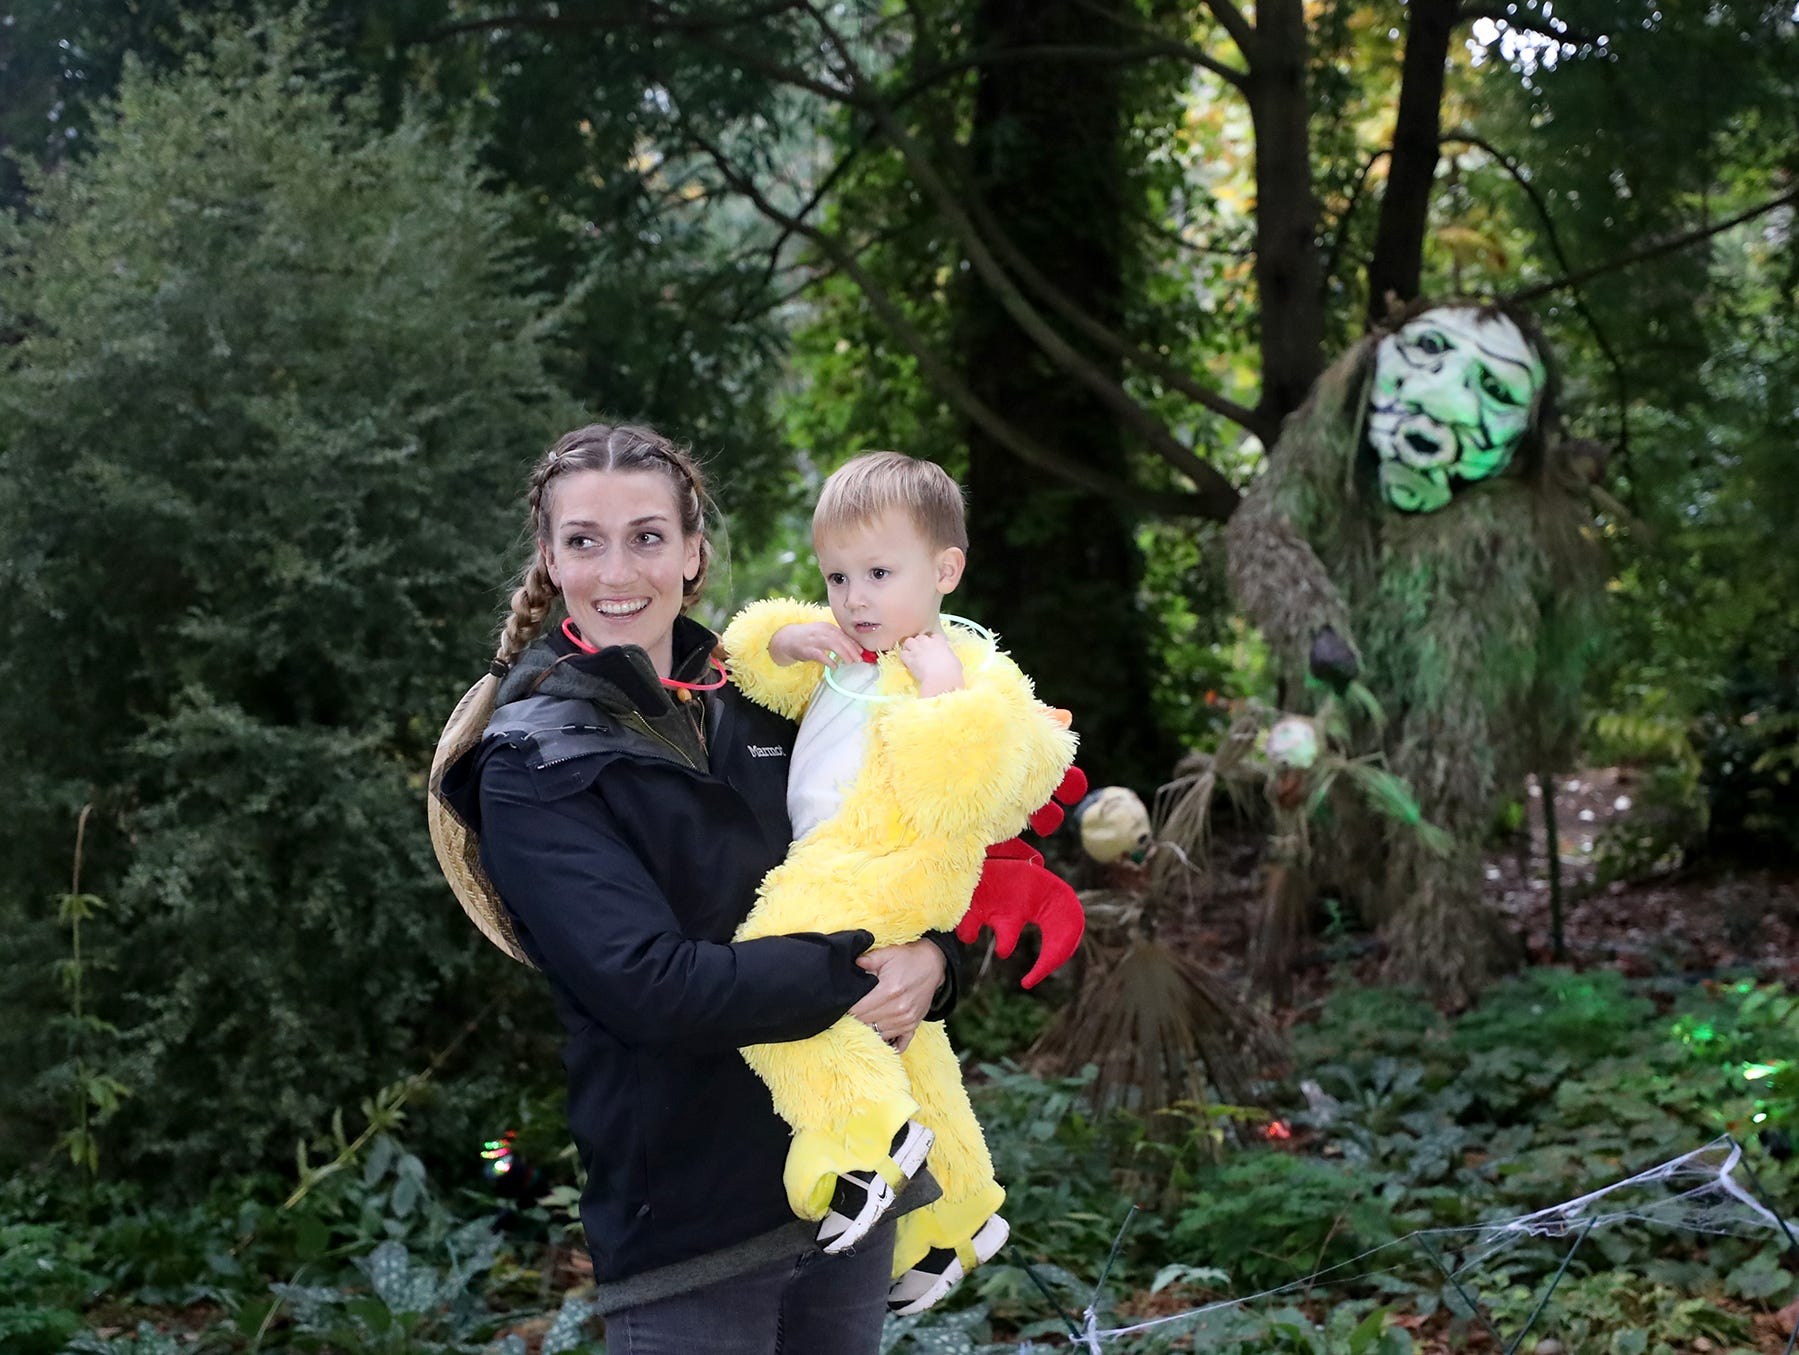 Mariah Ordonez and son Leo, 2, in front of Slapu at the Haunted Heronswood 2018 in Kingston was Friday and Saturday, October,26-27. The second annual garden halloween charters tour featured some SÕKlallam folk stories. She made the mask of Slapu which is from a S'Klallam story the mask.